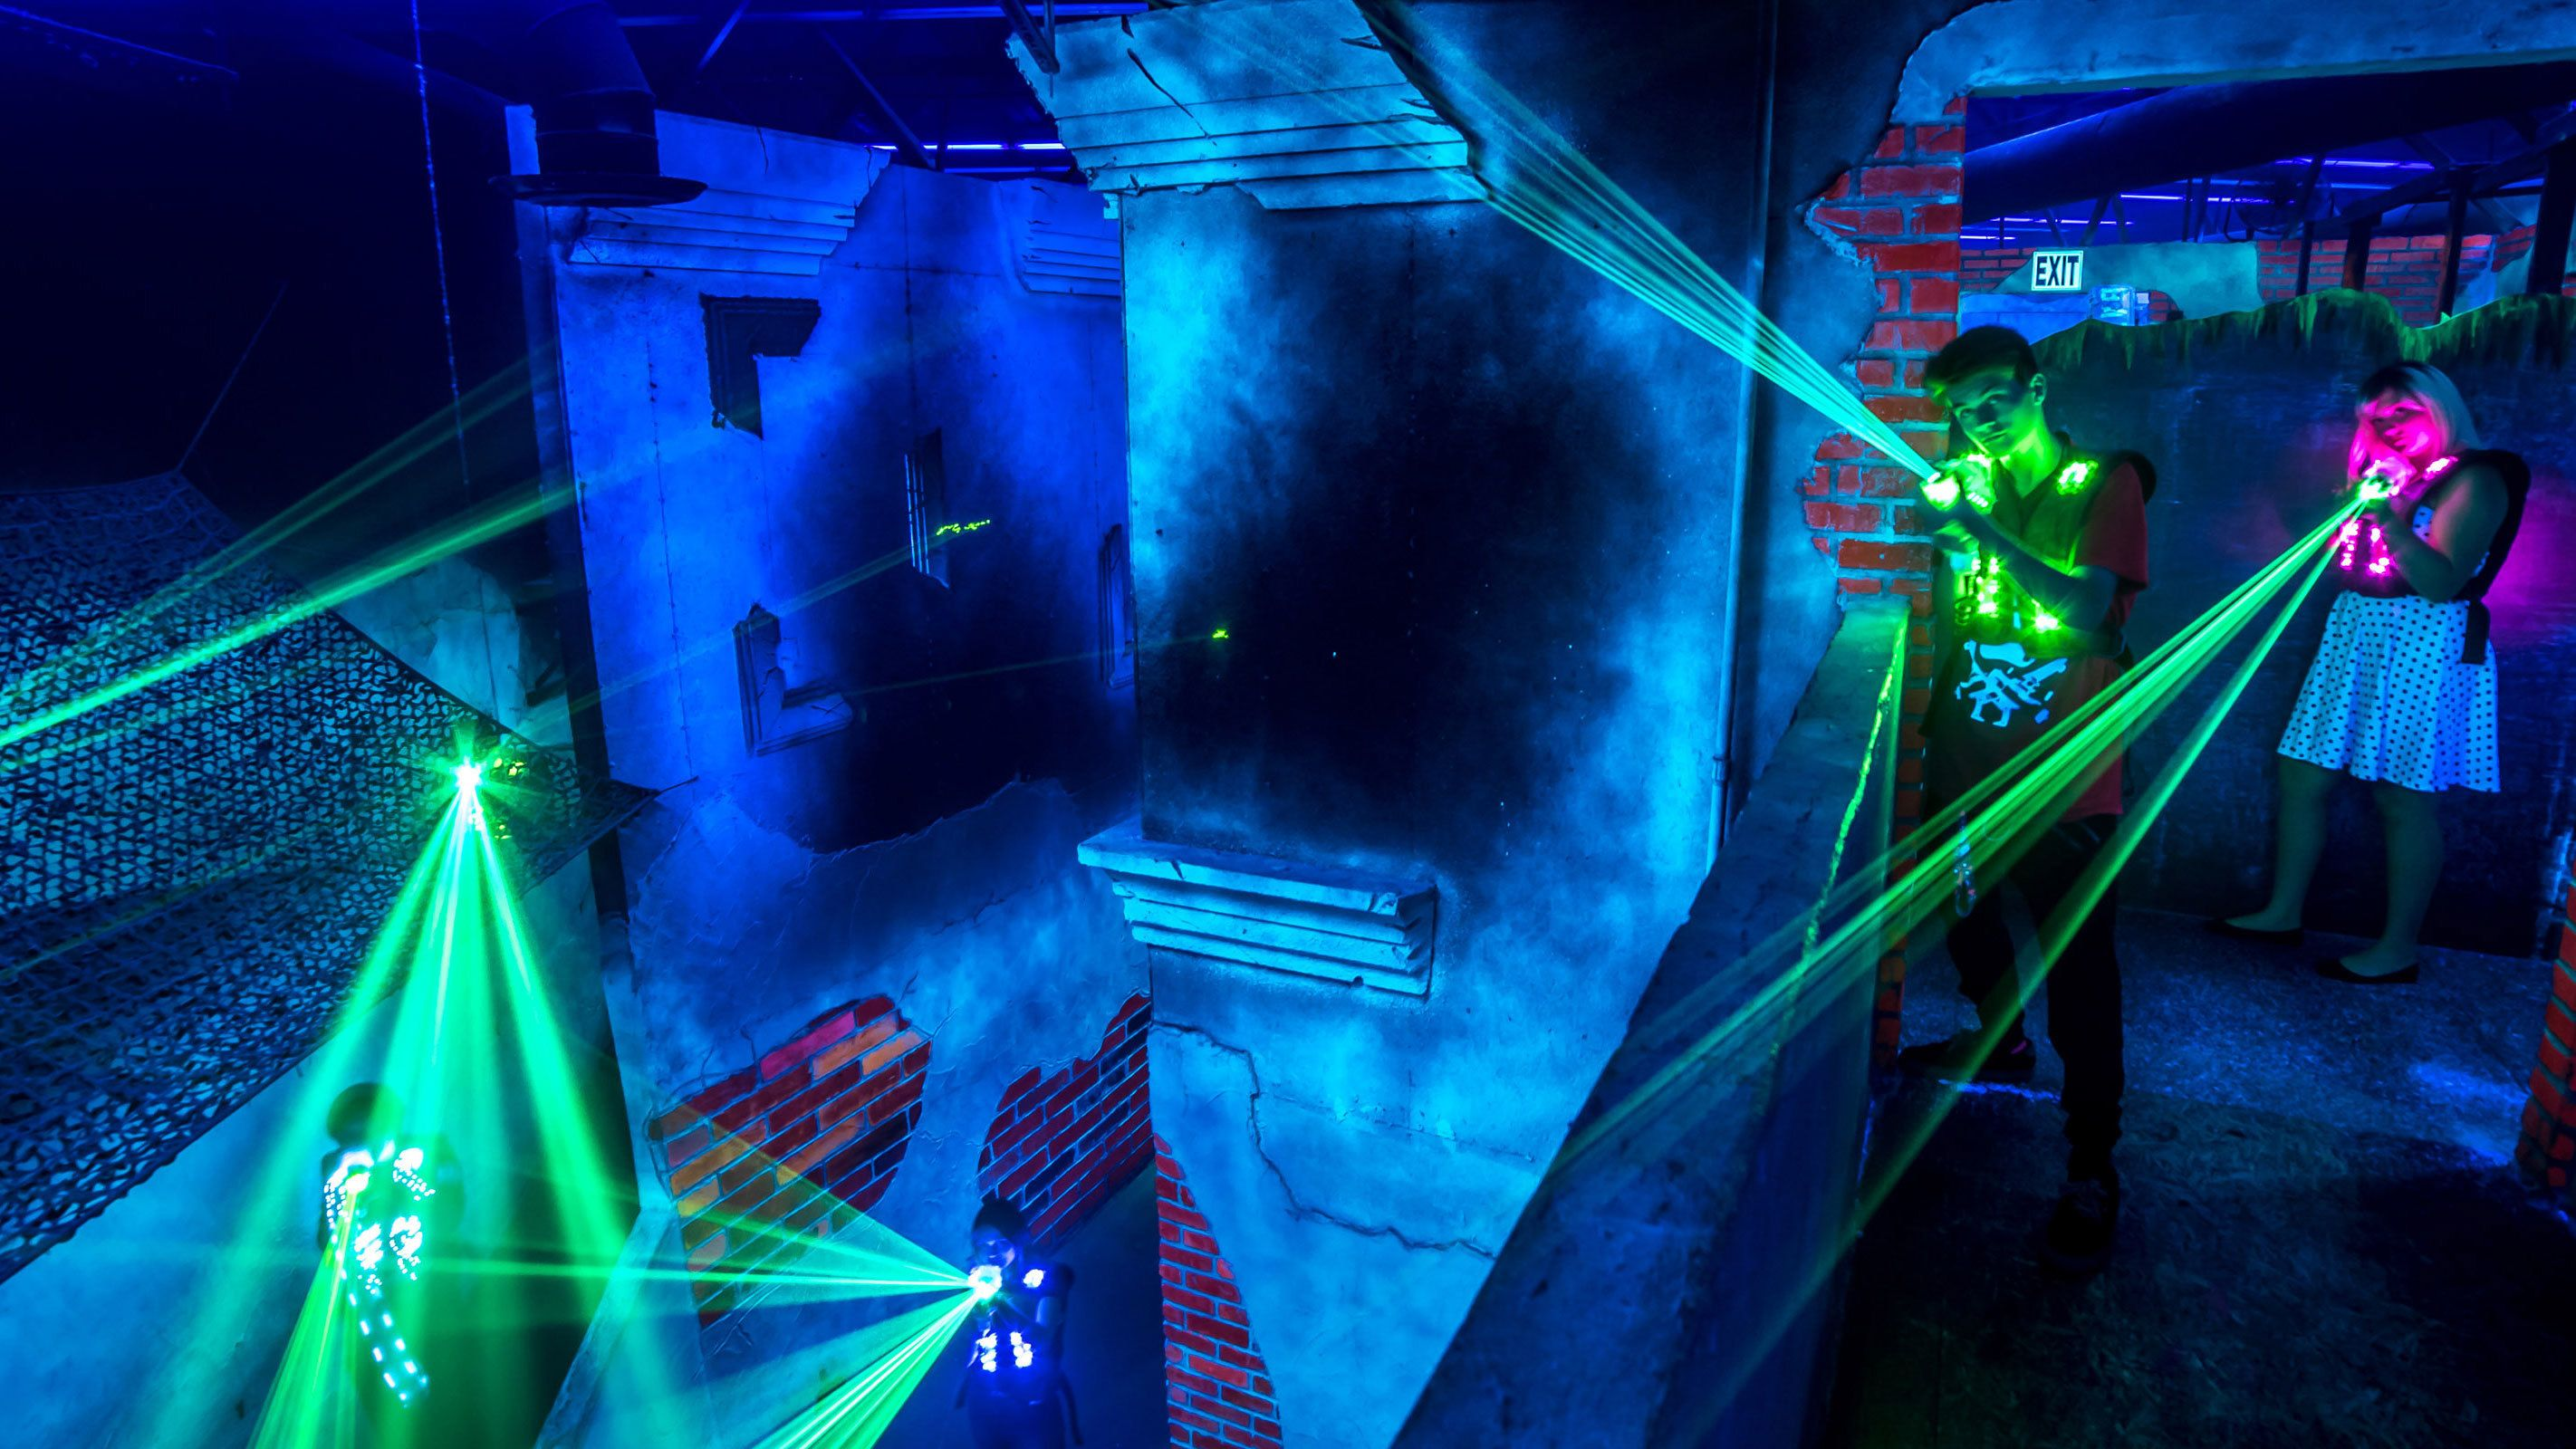 Lasers shining through room at battleBLAST Laser Tag